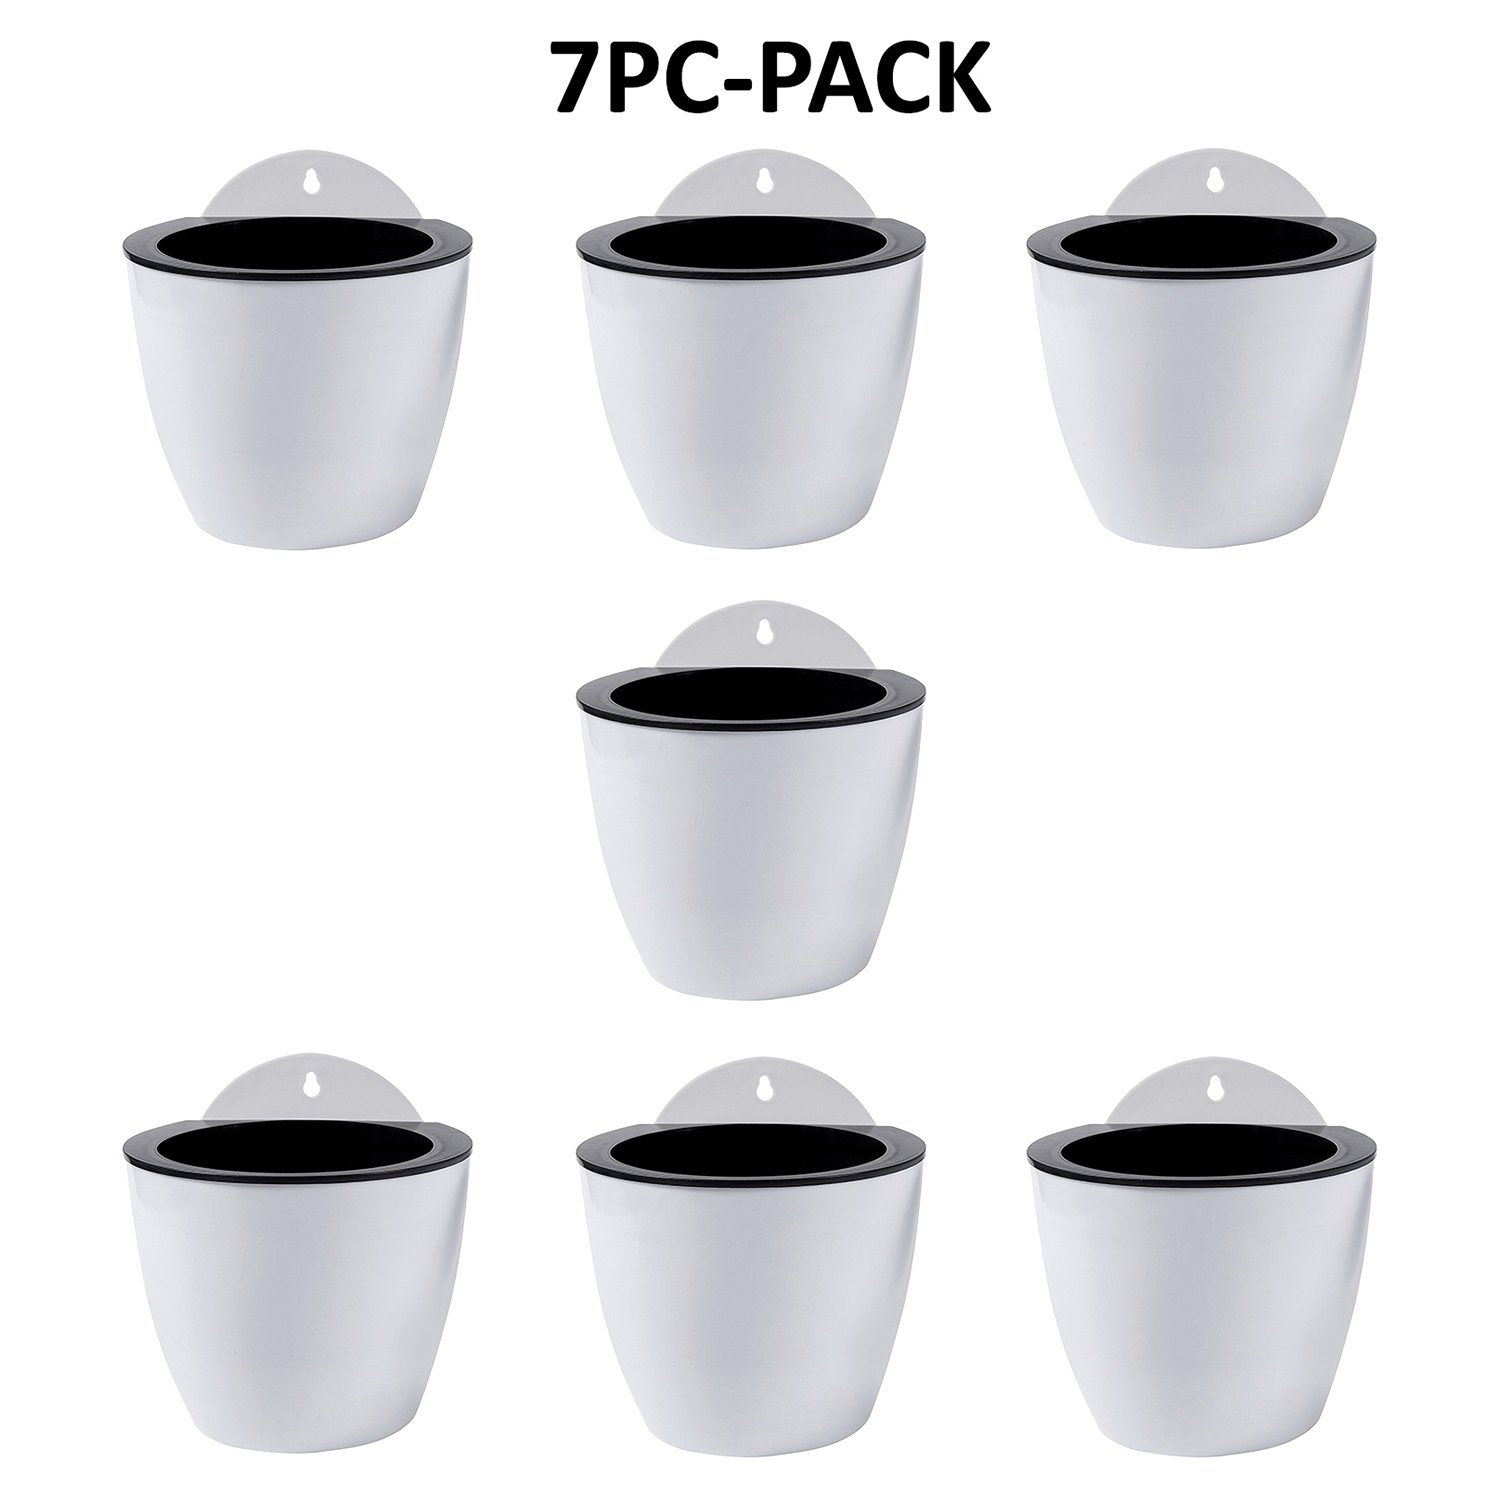 Self Watering Hanging Planters 7 Pack for Succulent Plants Flowers Indoor Outdoor Window Wall Plant Pots White Plastic Medium 5 Inch with Hooks by ShoppeWatch PL34 by ShoppeWatch